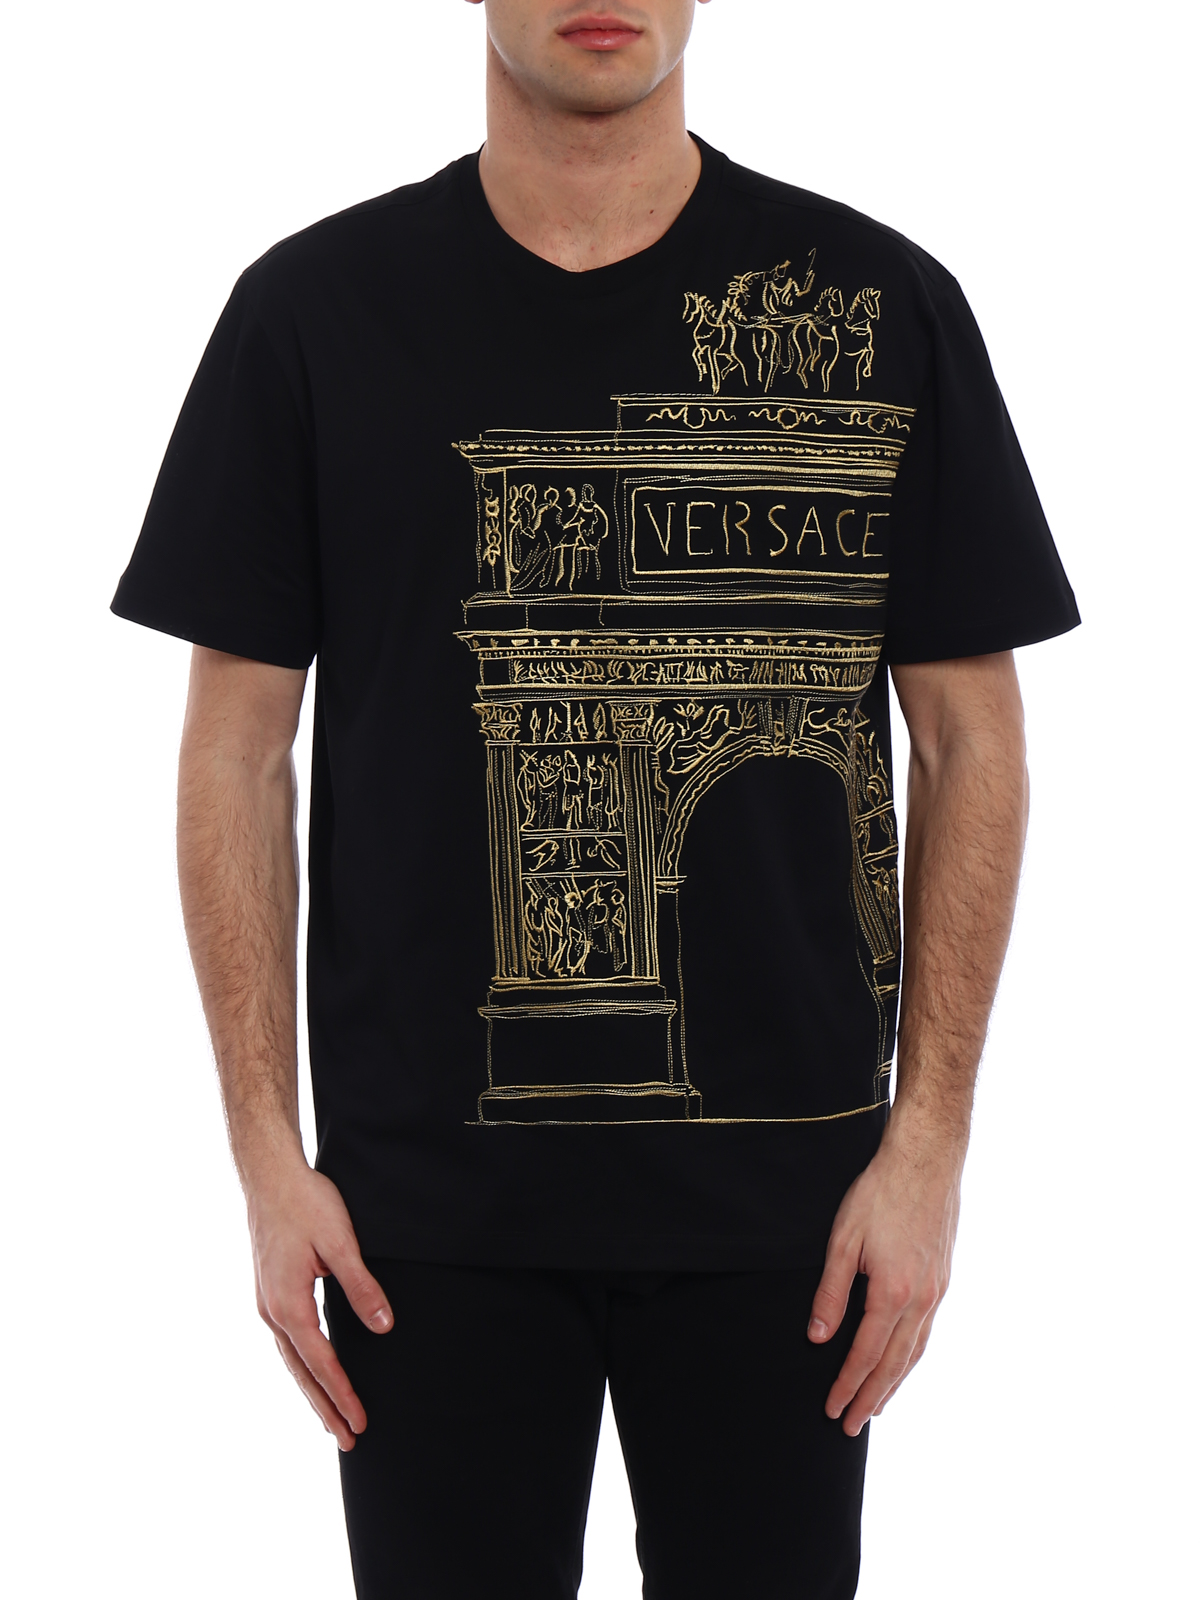 Ikrix versace t shirts pencil sketch embroidered black tee